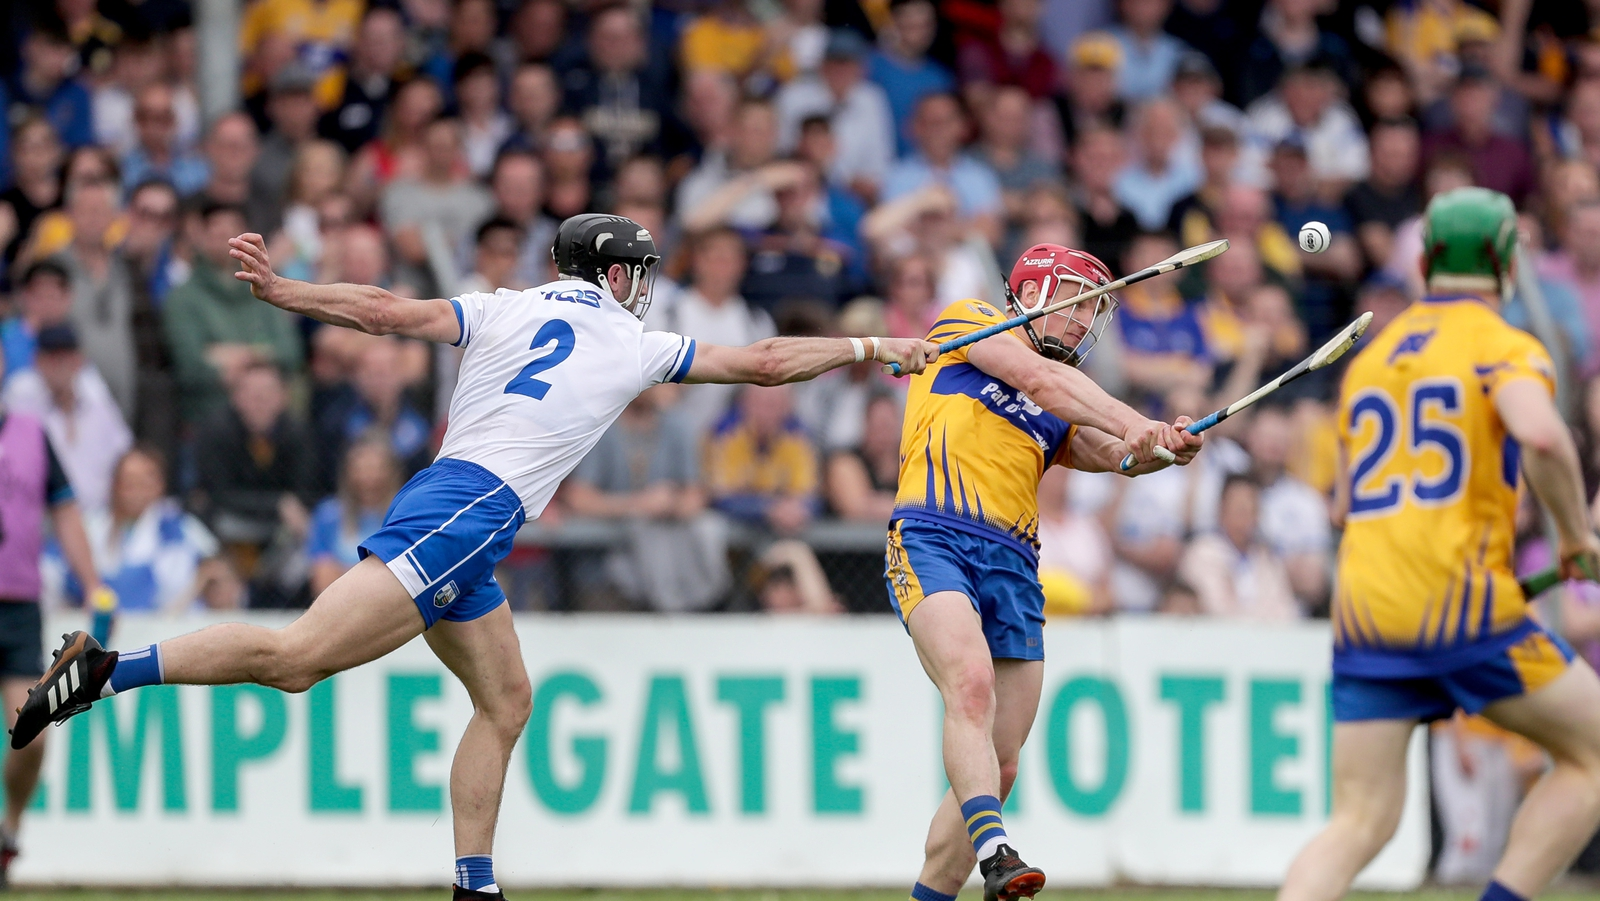 Image - Waterford lost their opening game away to Clare in Ennis